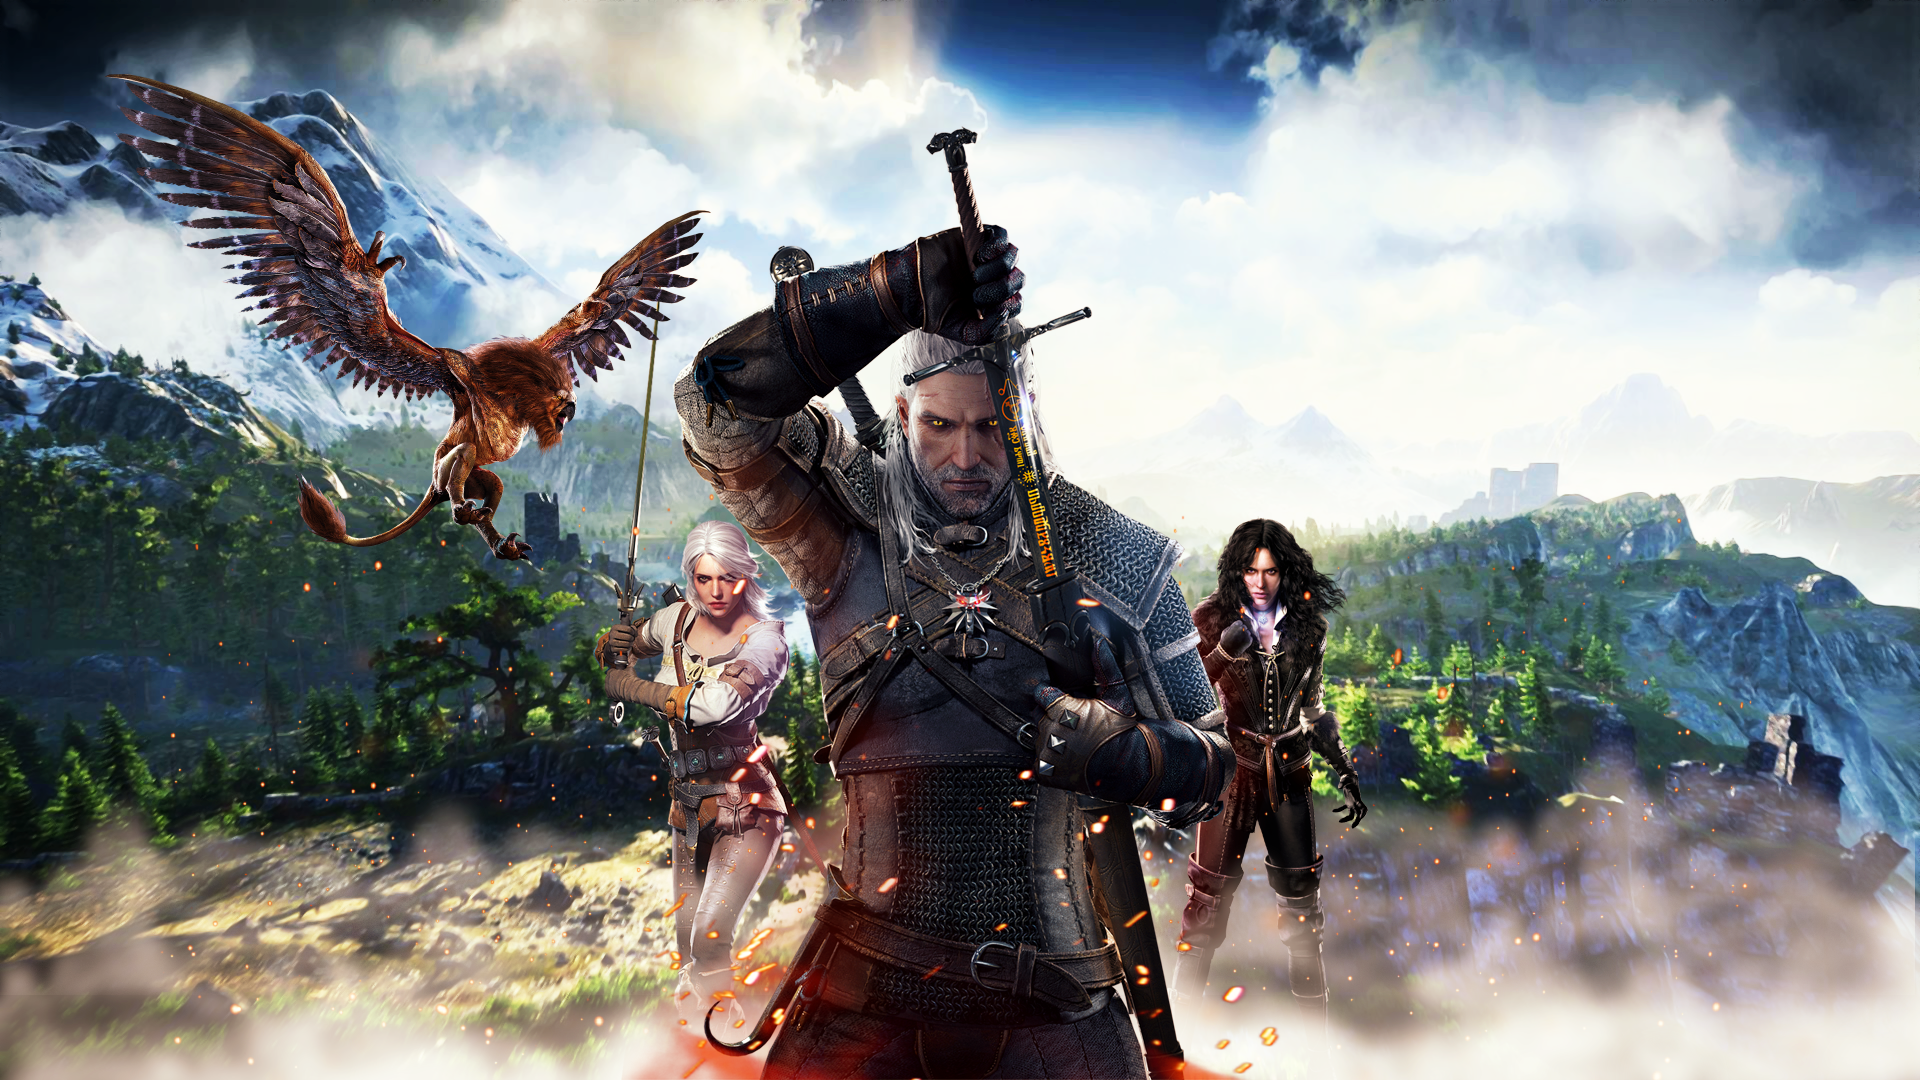 The Witcher 3 Wallpaper Hd 3